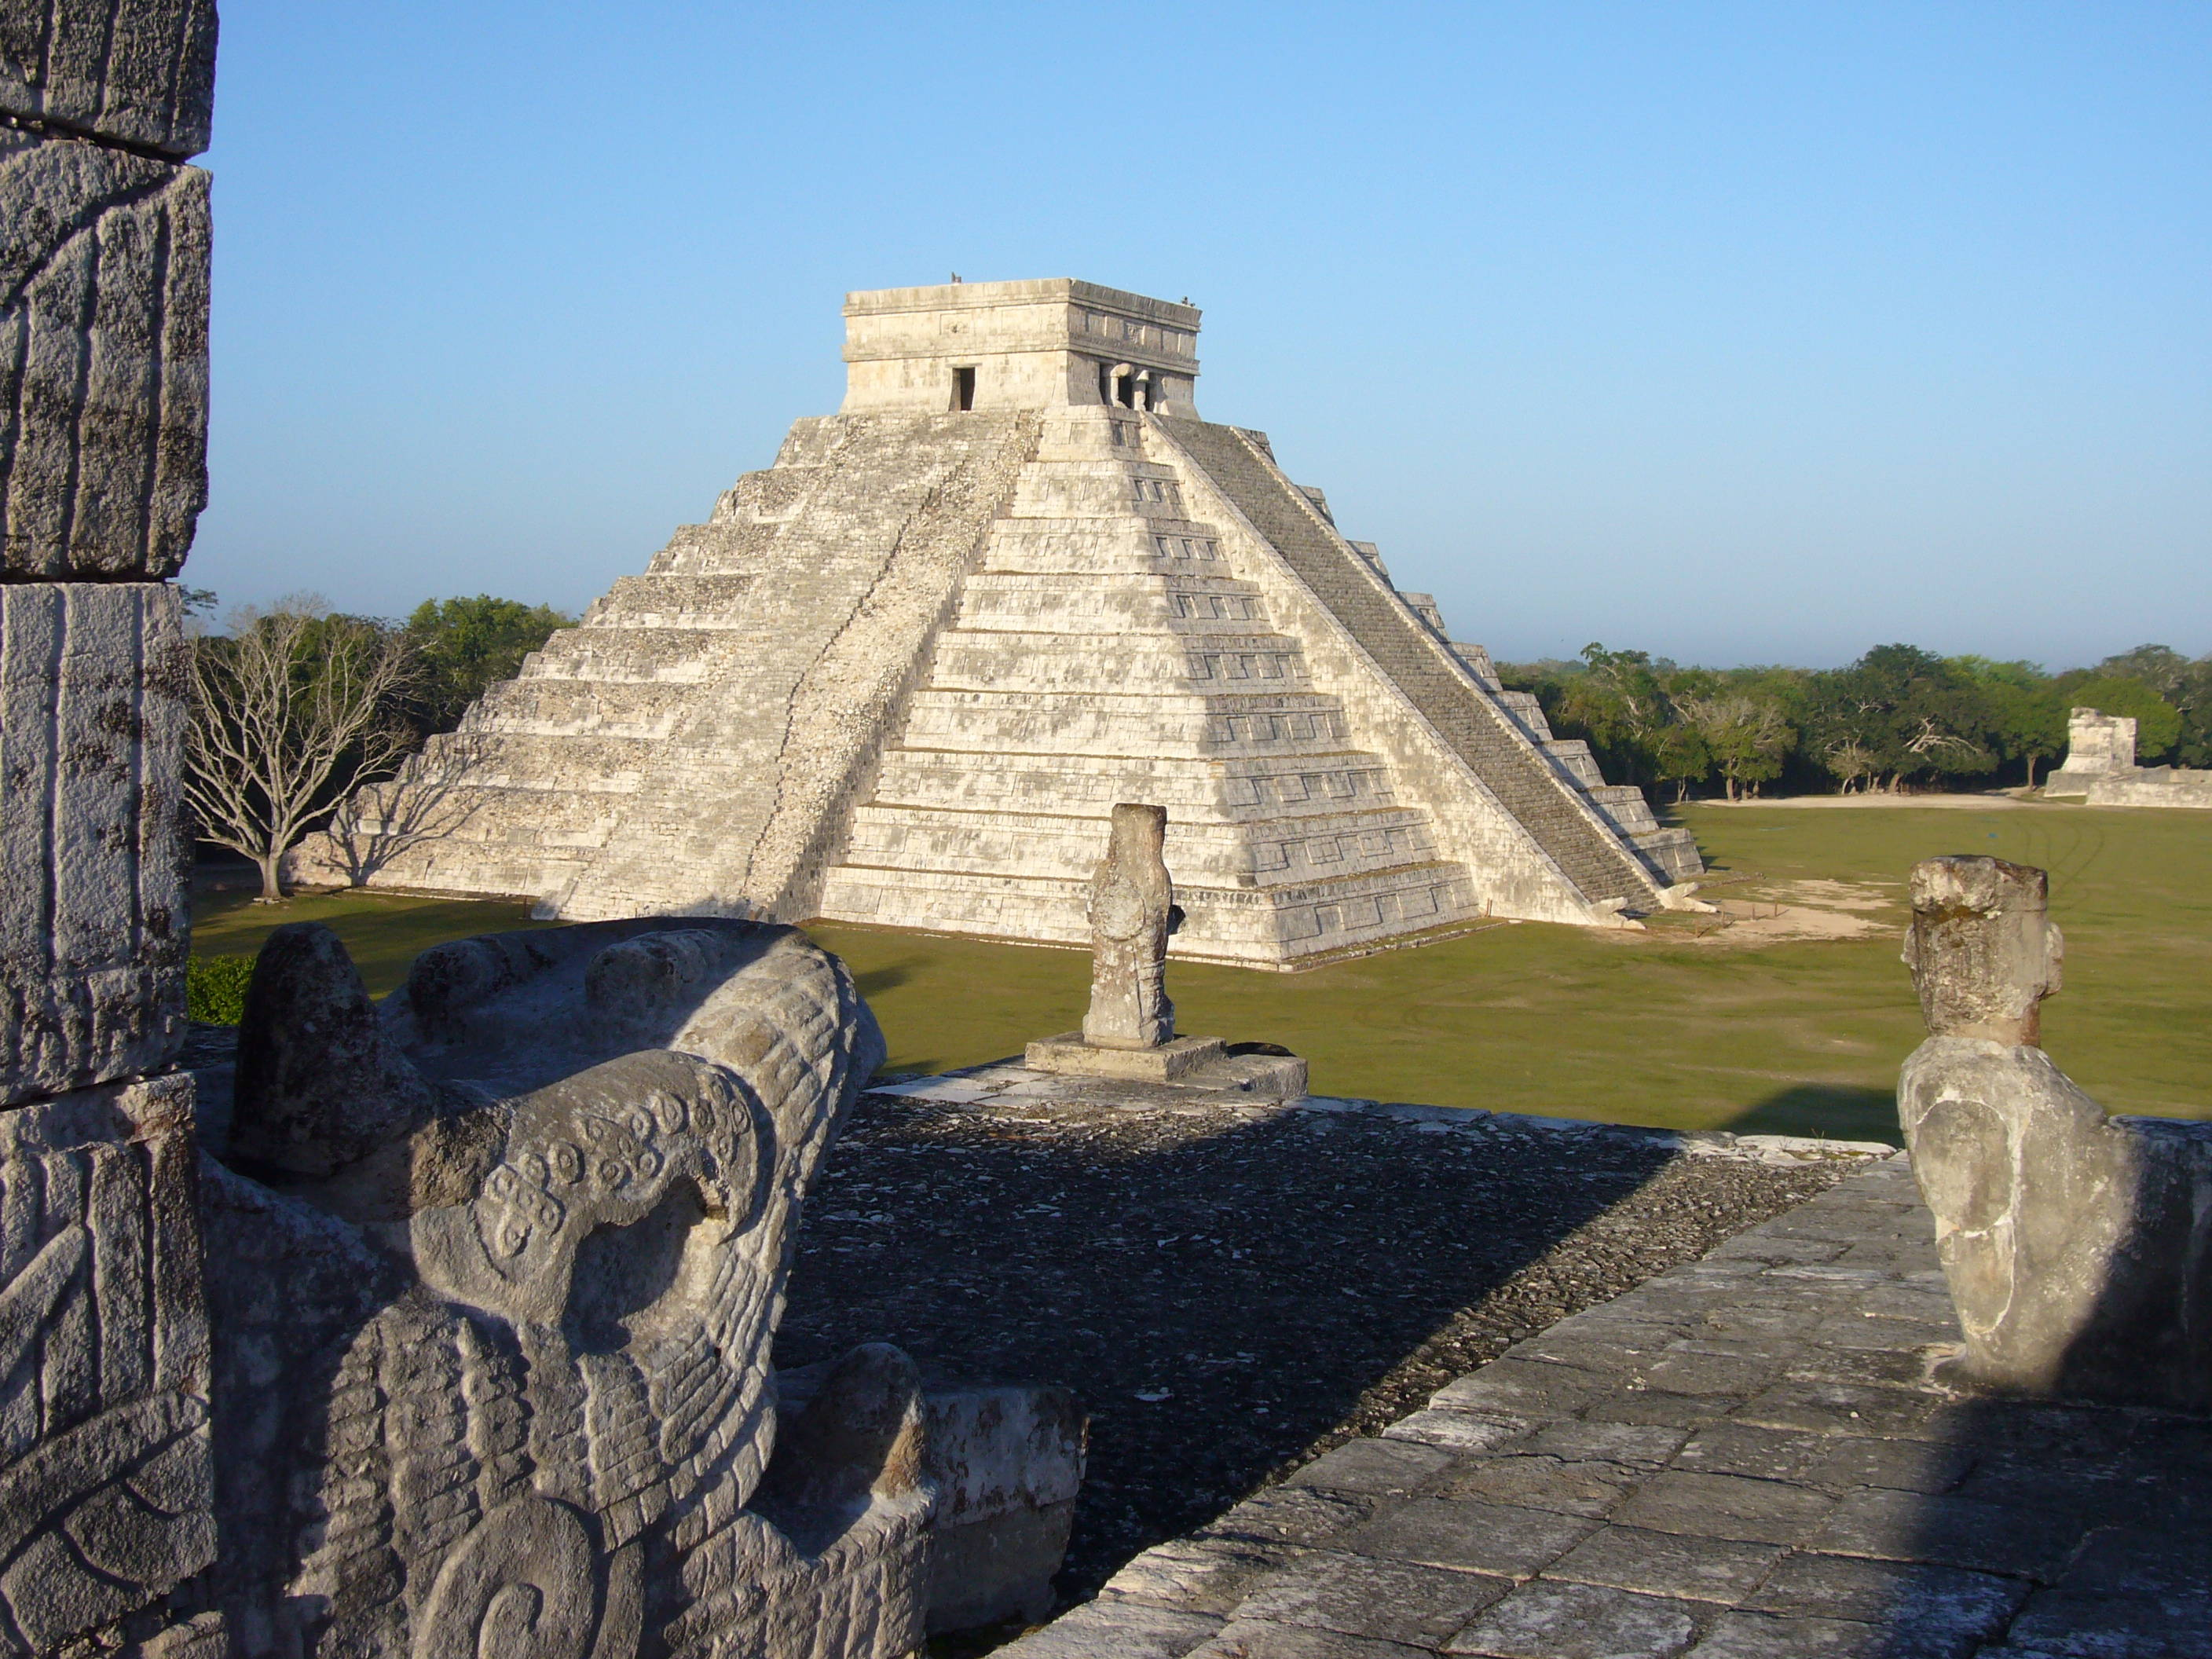 World Wonder: The Mayan Ruins at Chichen Itza